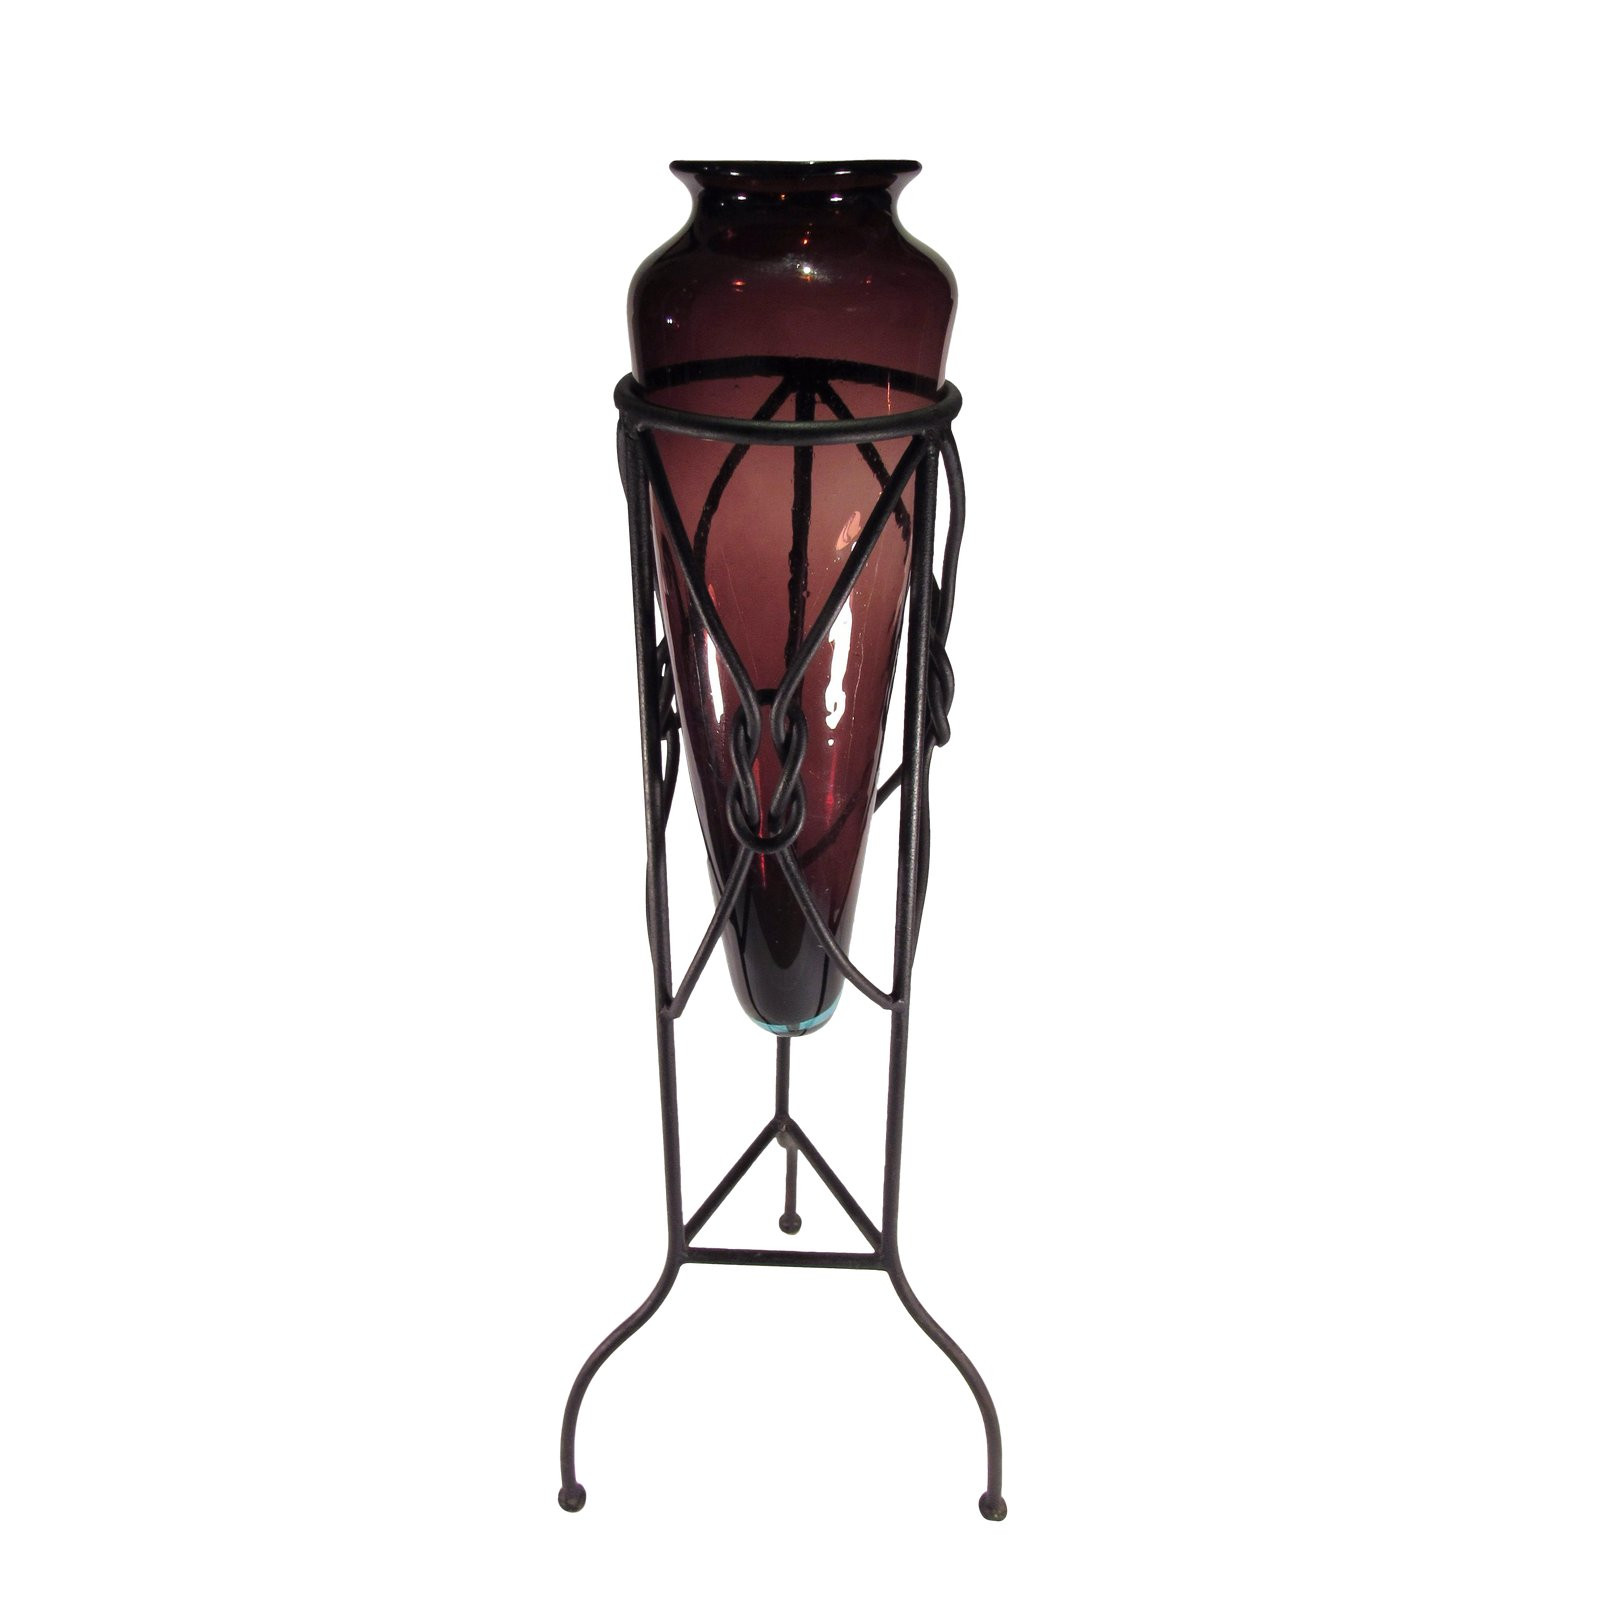 Large Glass Vase Candle Holders Of Large Amphora Style Glass Vase In Iron TriPod Stand Chairish with Large Amphora Style Glass Vase In Iron TriPod Stand 8677